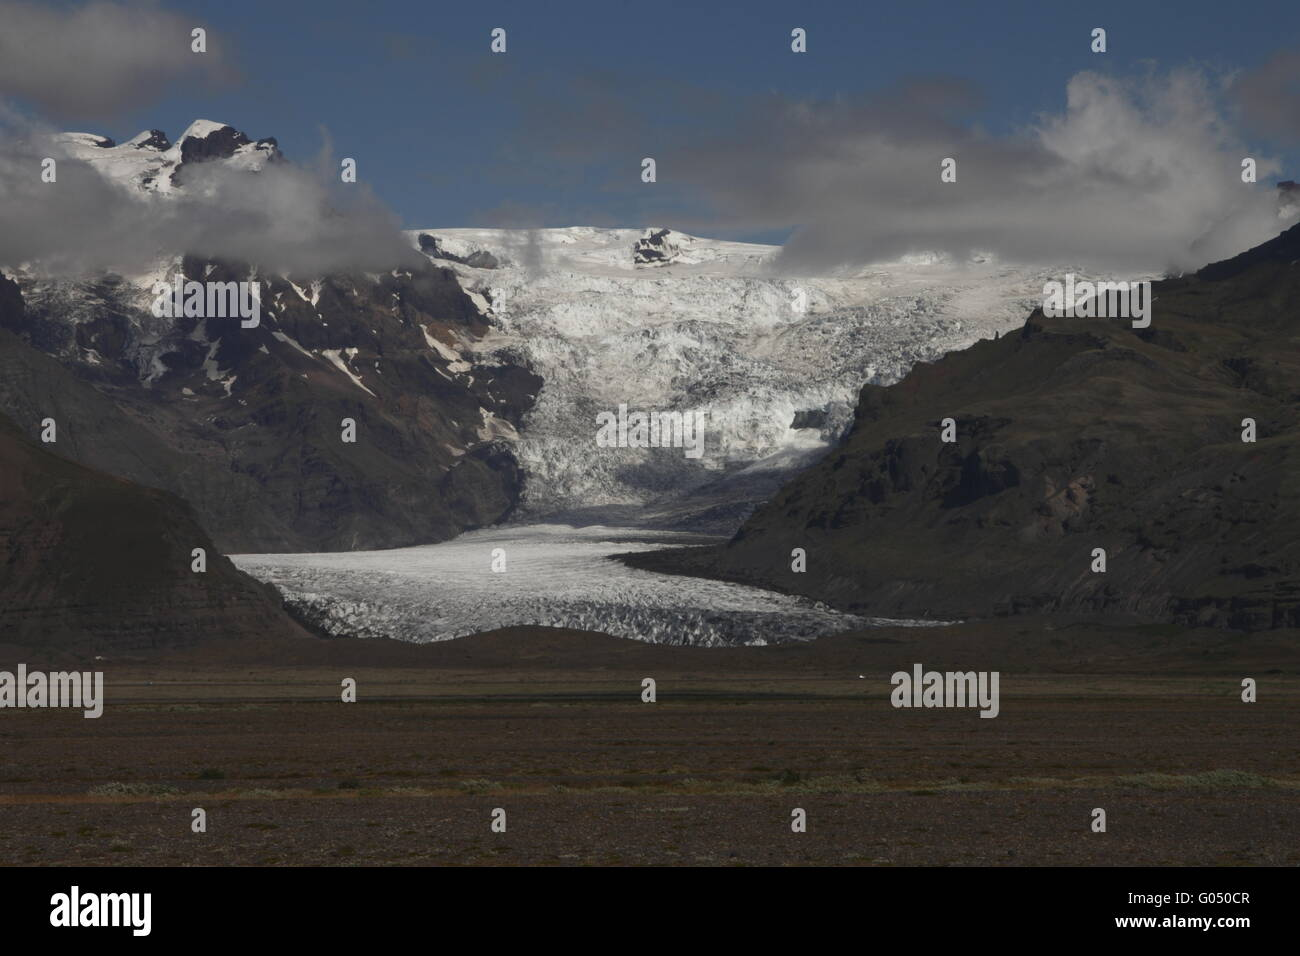 Svínafellsjökull is one of the outlet glaciers (glacier tongues) of the Vatnajökull ice cap. Skaftafell - Stock Image